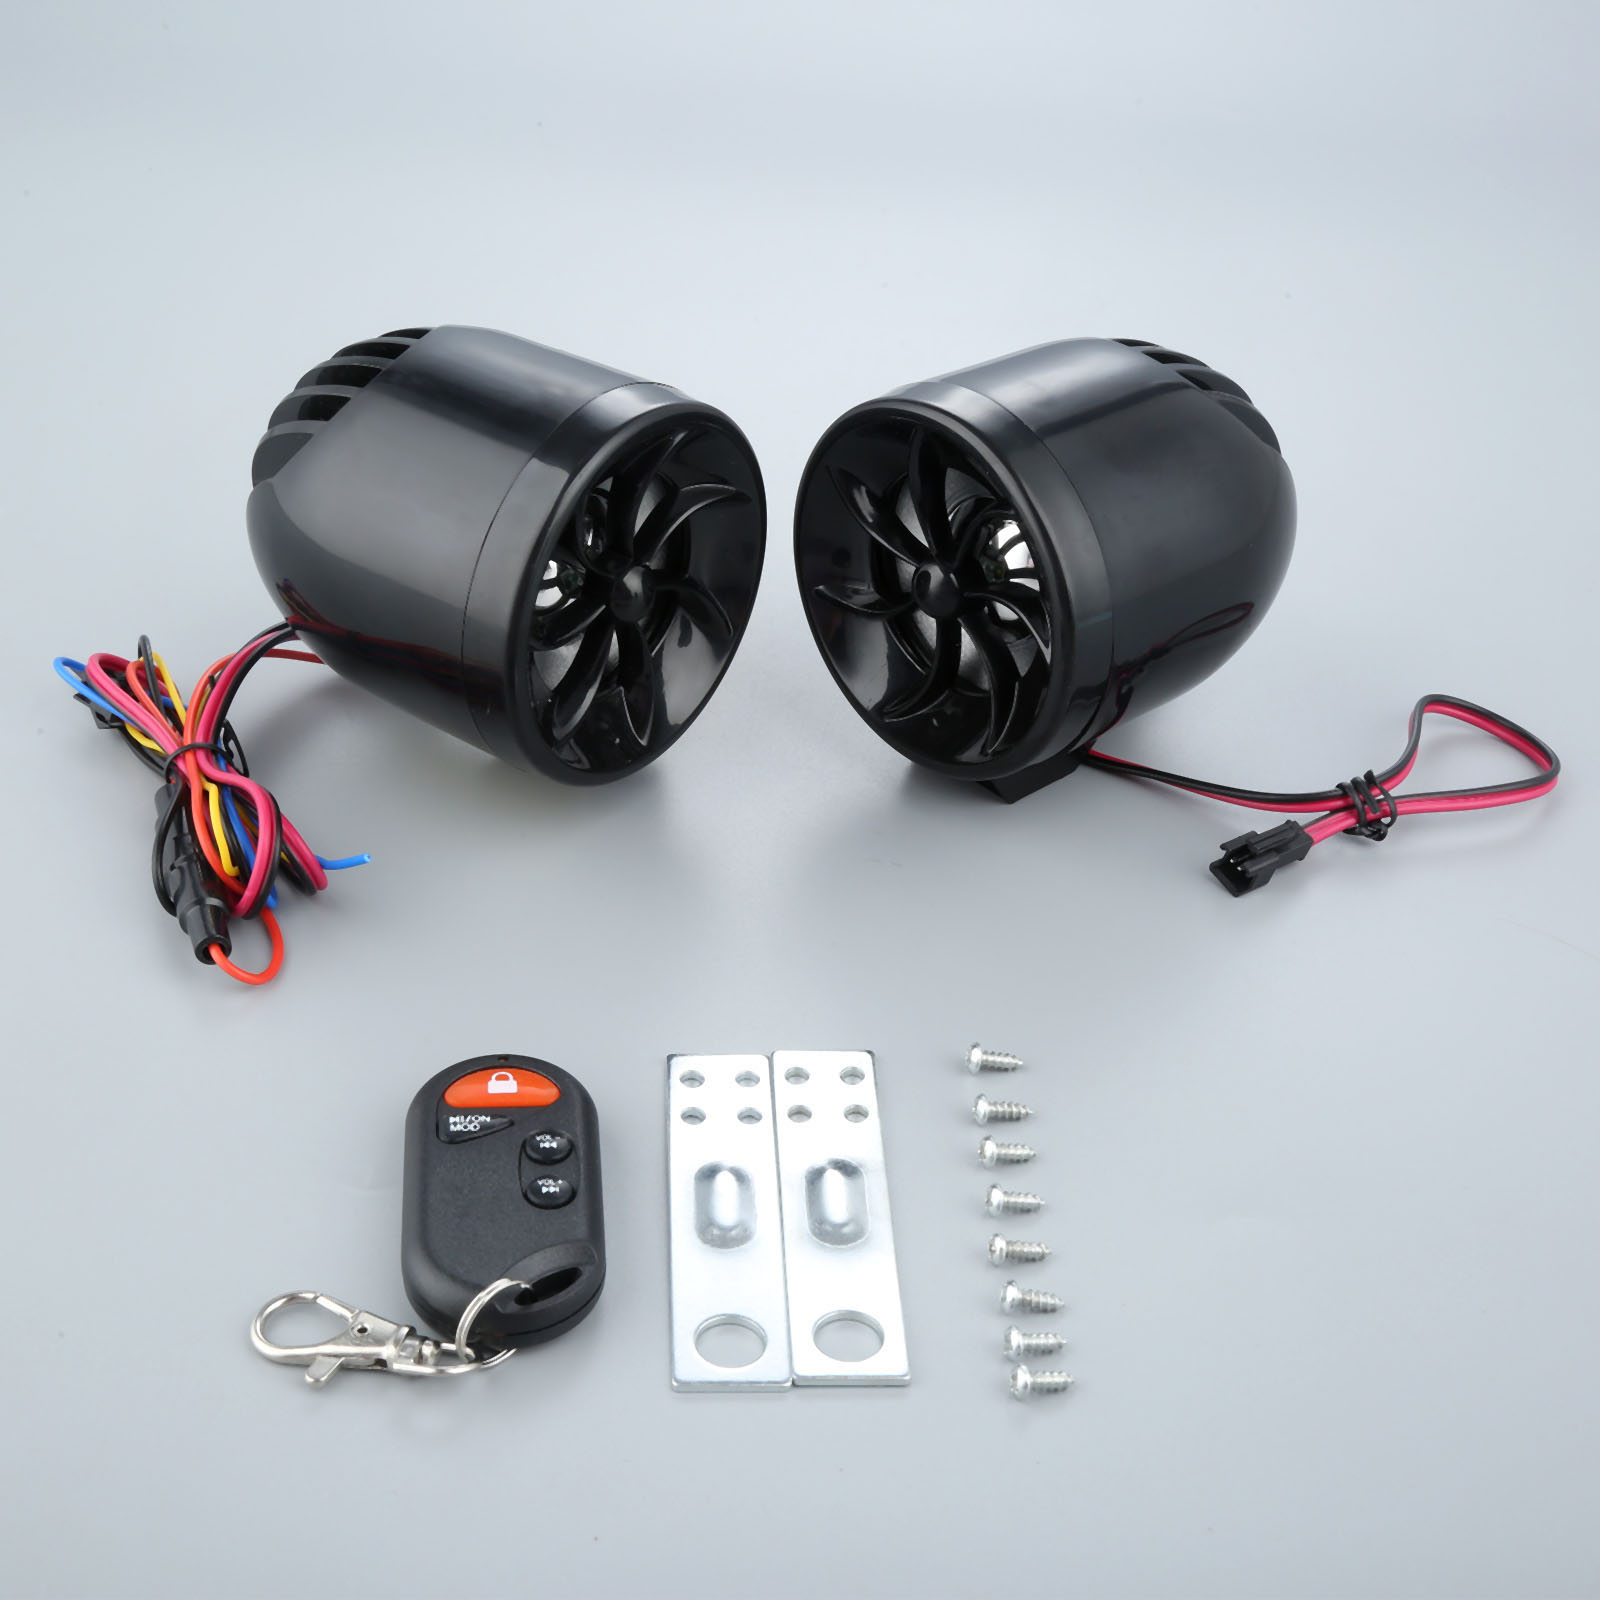 yetaha mt483 motorcycle audio external wiring mp3 player speaker anti theft protection support fm usb sd aux with voice prompts in theft protection from  [ 1600 x 1600 Pixel ]